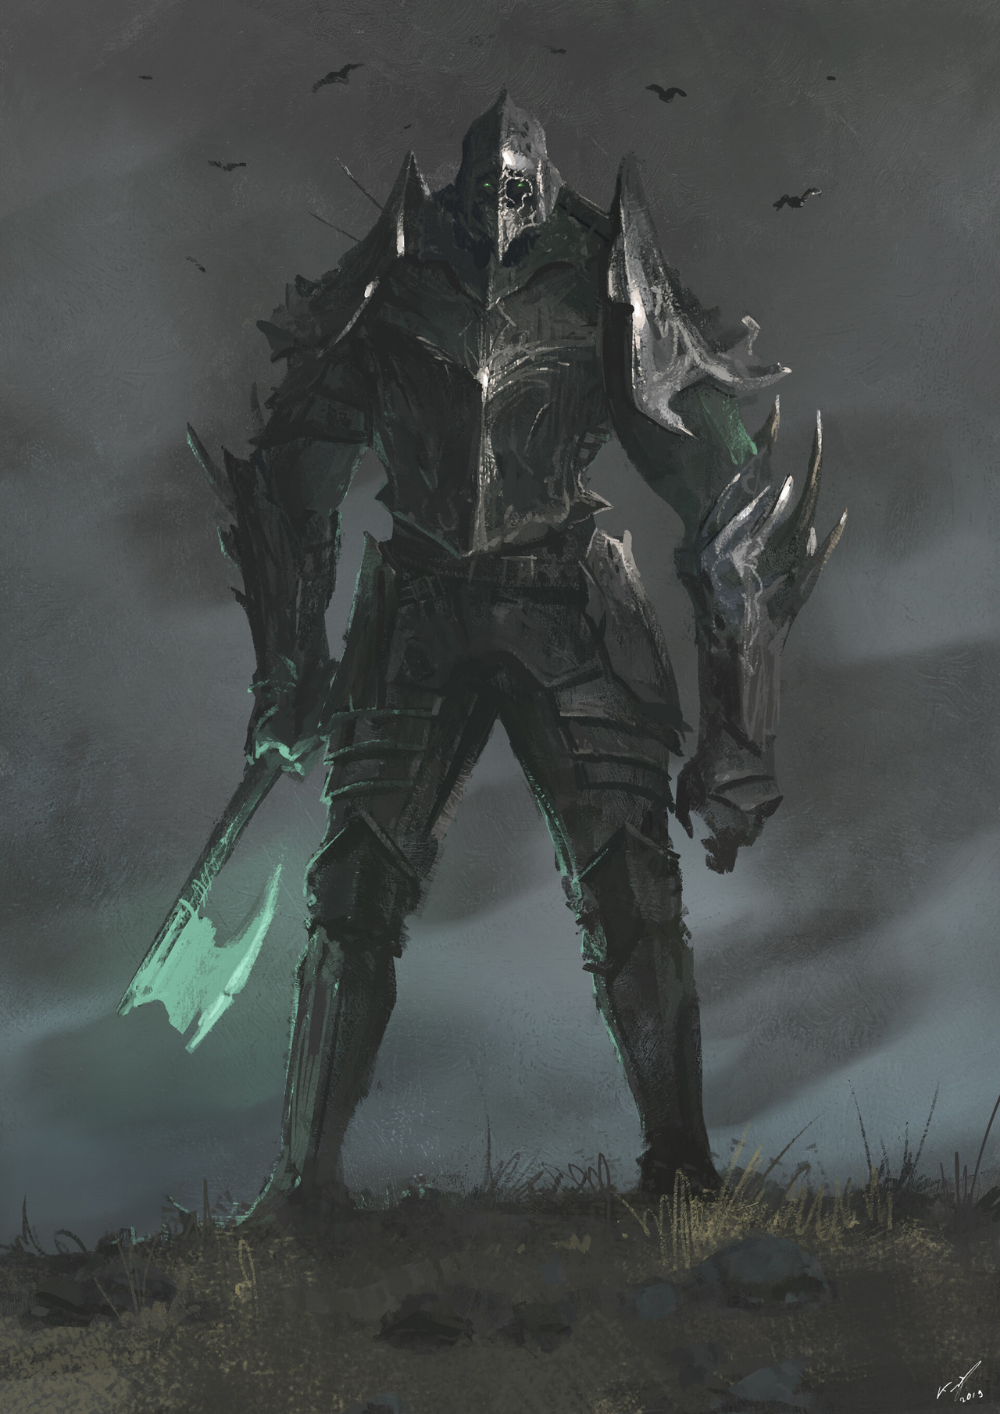 Dead Titan by Ashot Avetisyan (With images) | Fantasy monster, Character art, Fantasy armor